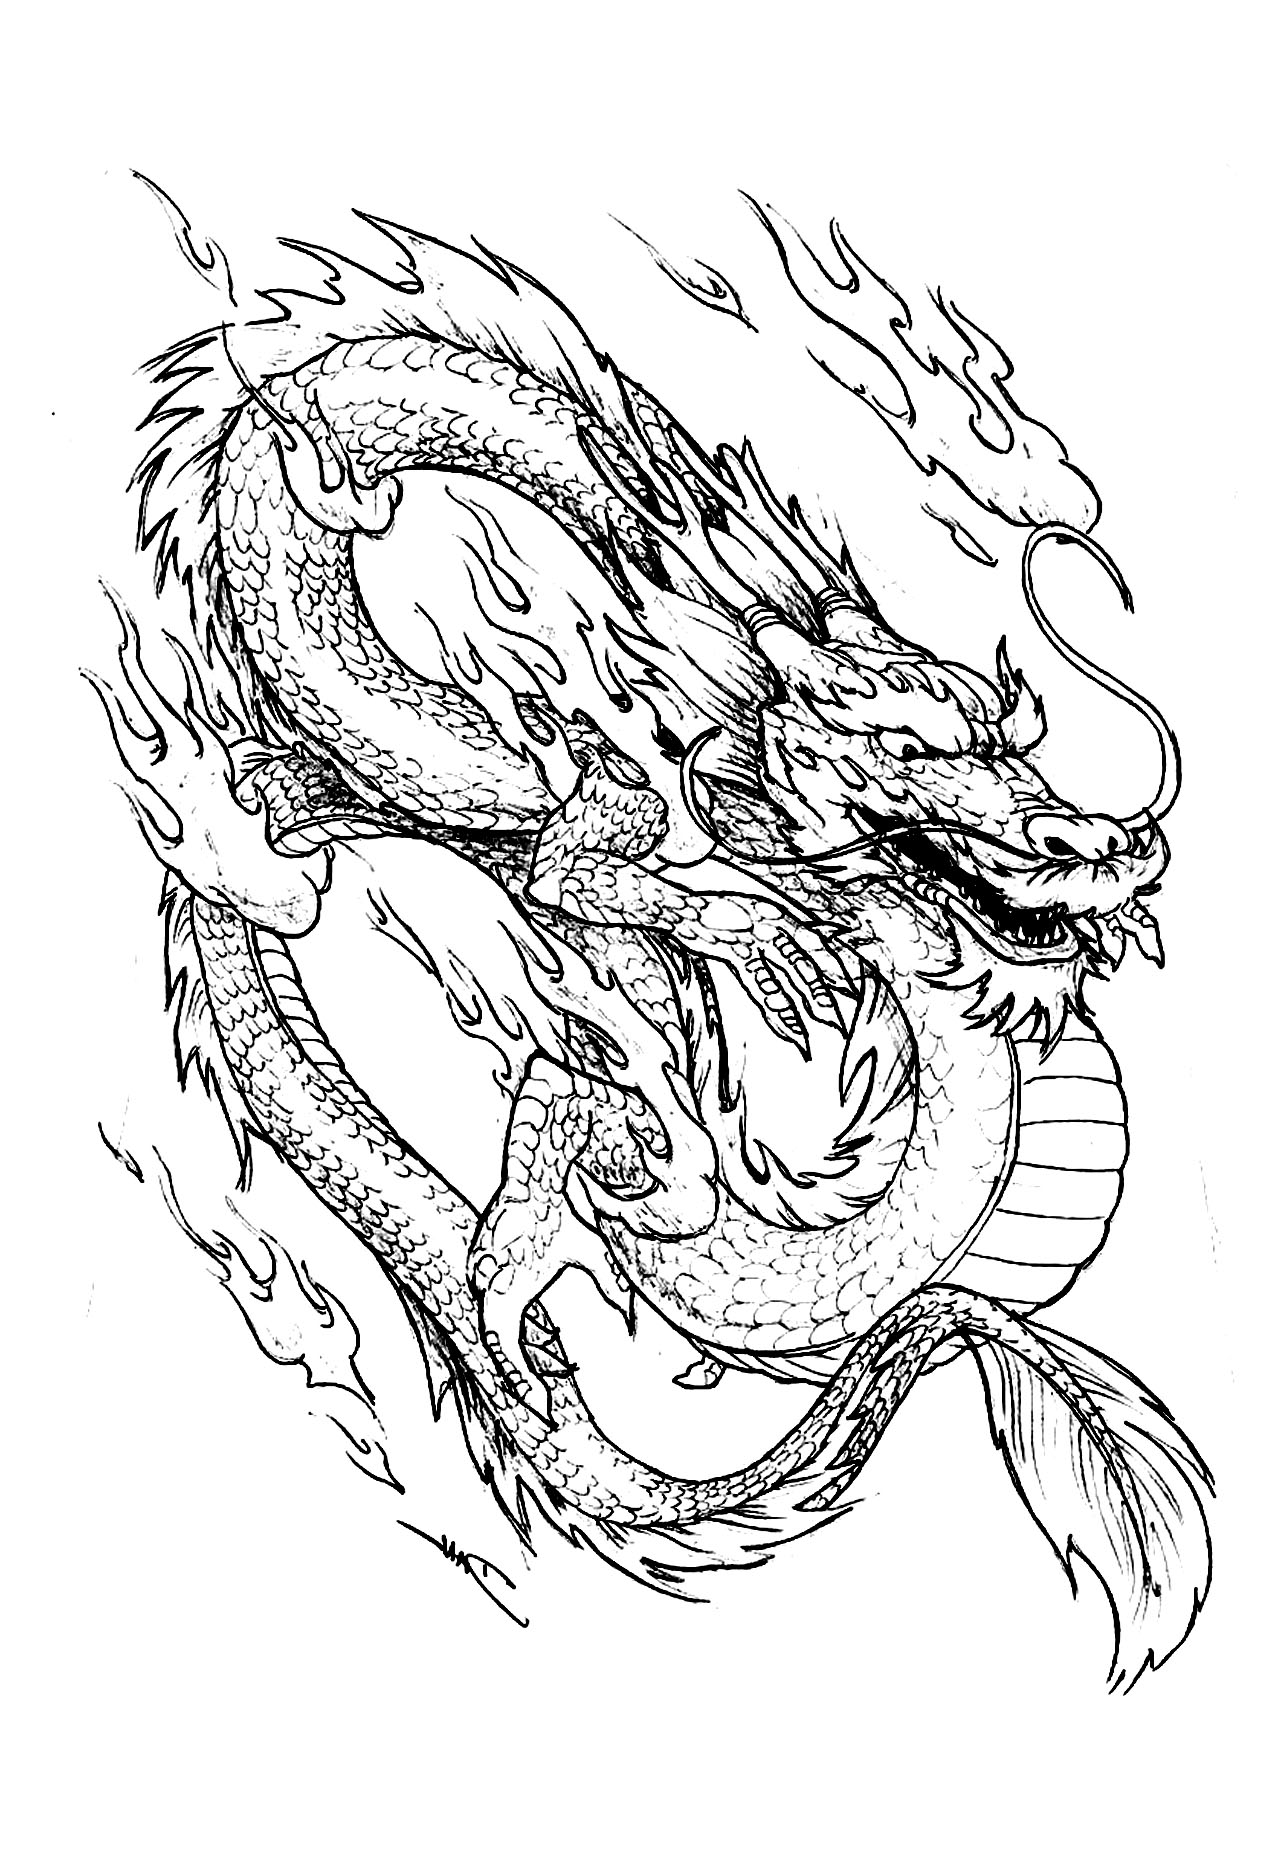 Chinese dragon | China & Asia - Coloring pages for adults | JustColor